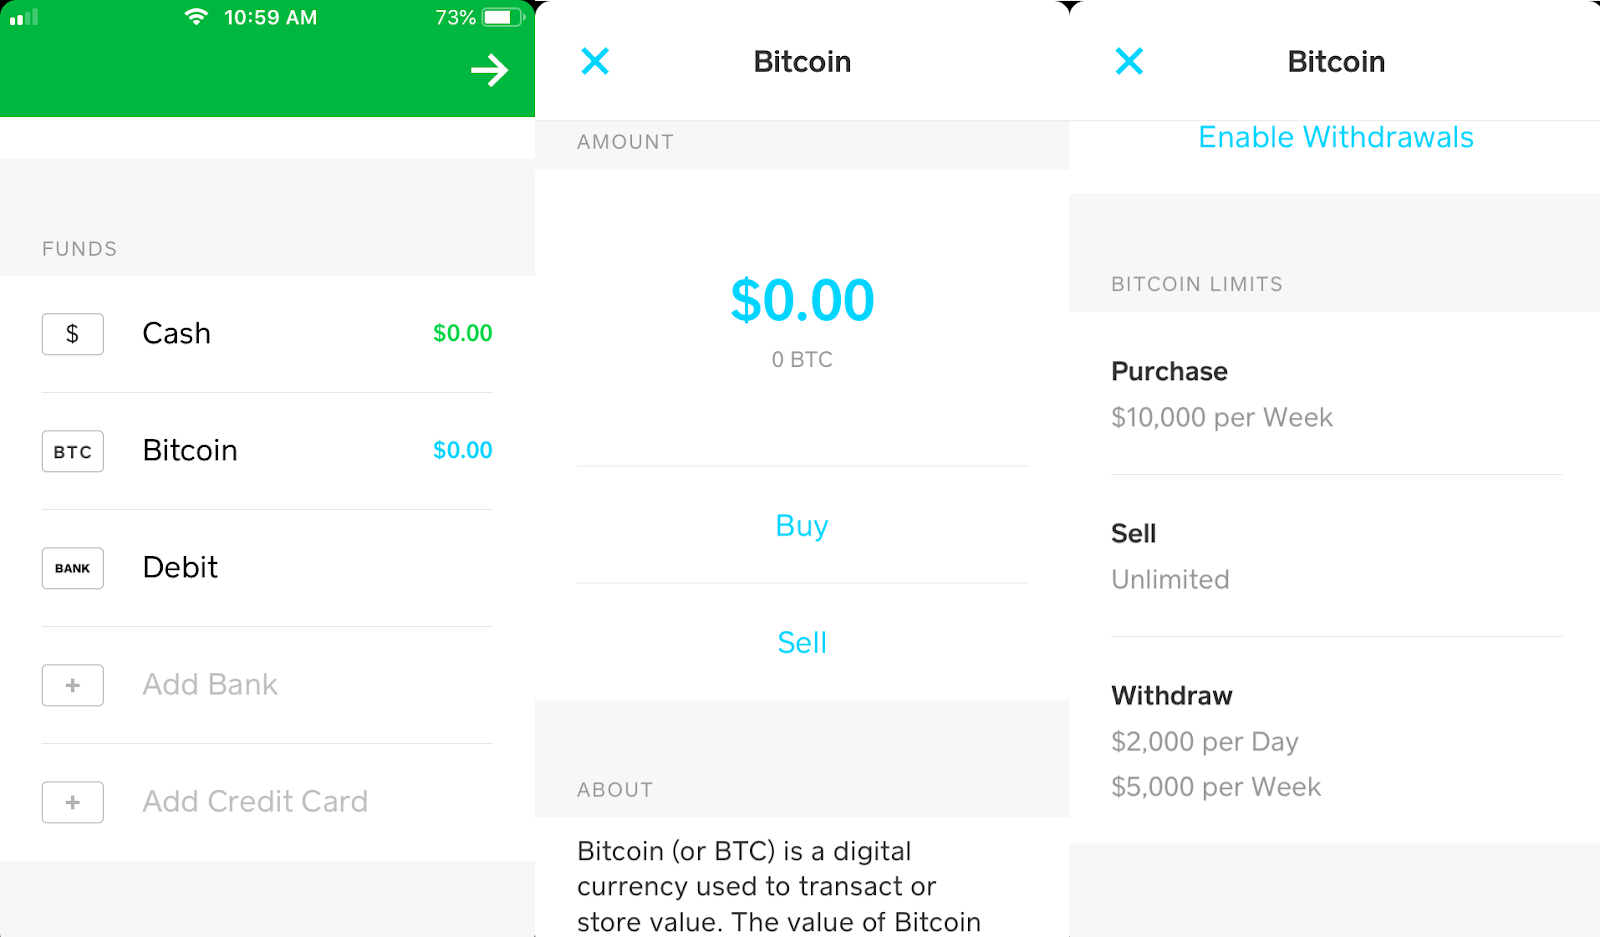 Screenshots of Venmo app showing balances in Cash and Bitcoin.